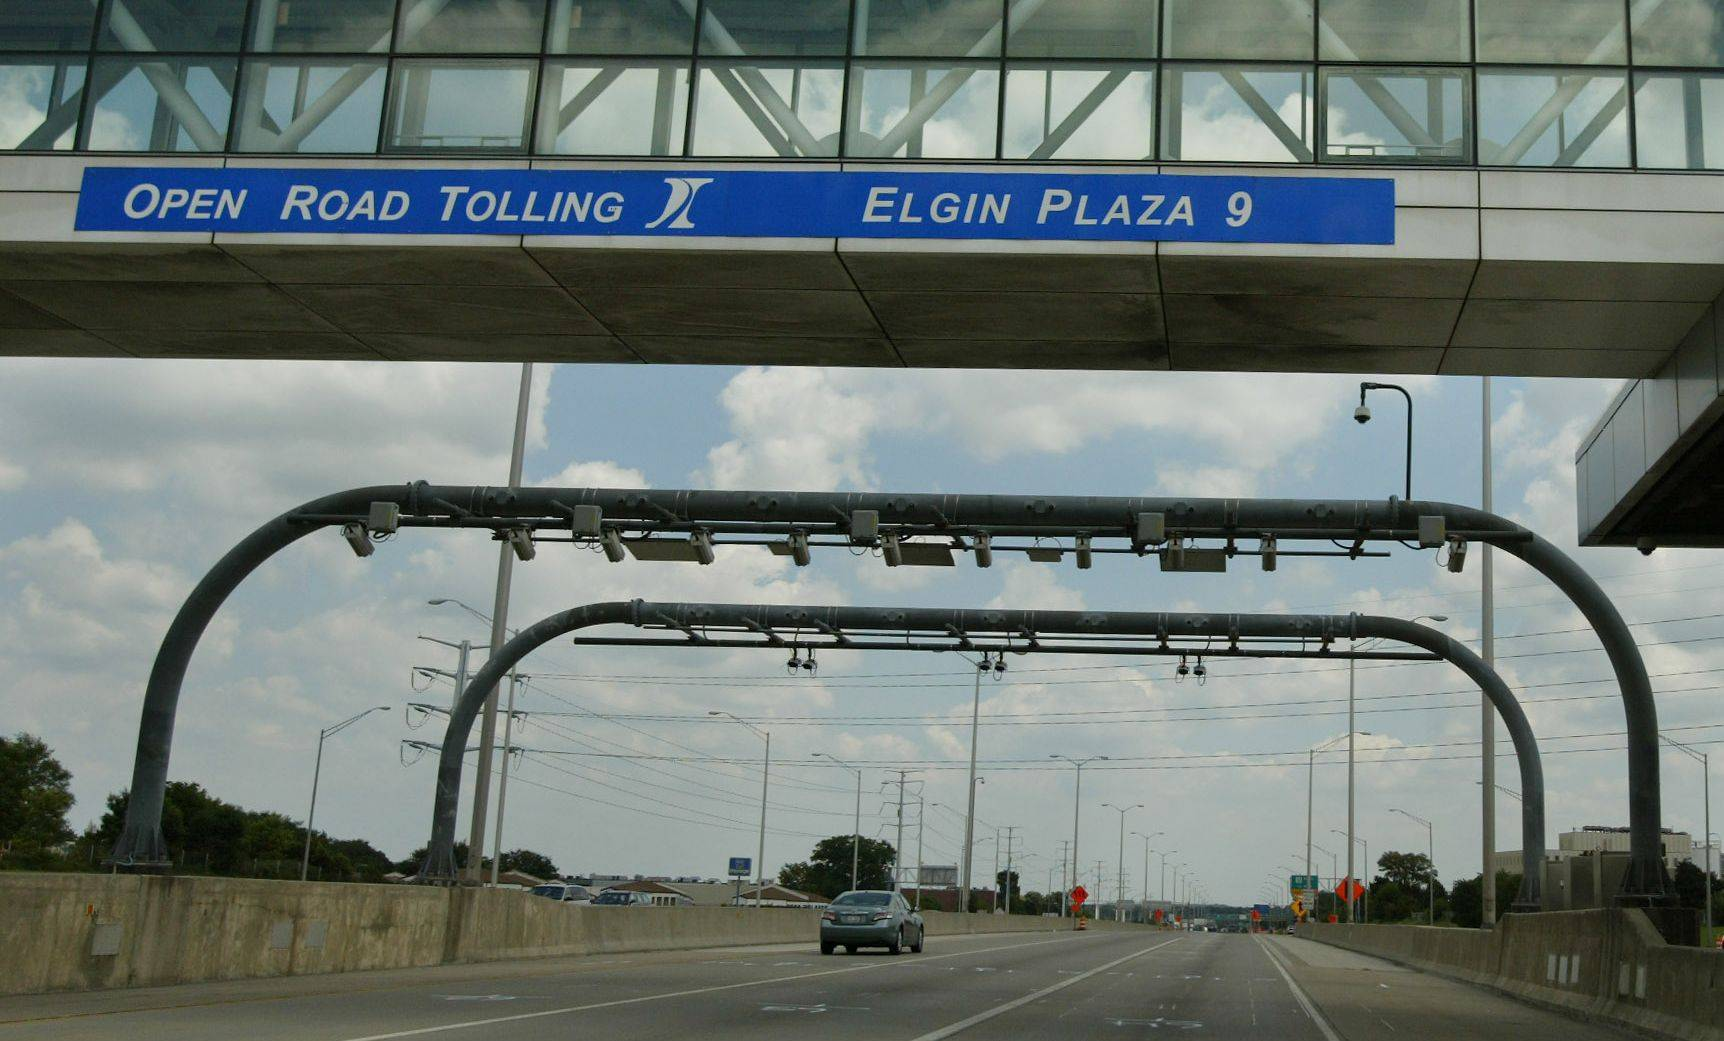 A toll hike going into effect Jan. 1 has some drivers pledging to find alternative routes. Tollway officials, however, think the loss of paying customers will be minimal and, in many cases, temporary.